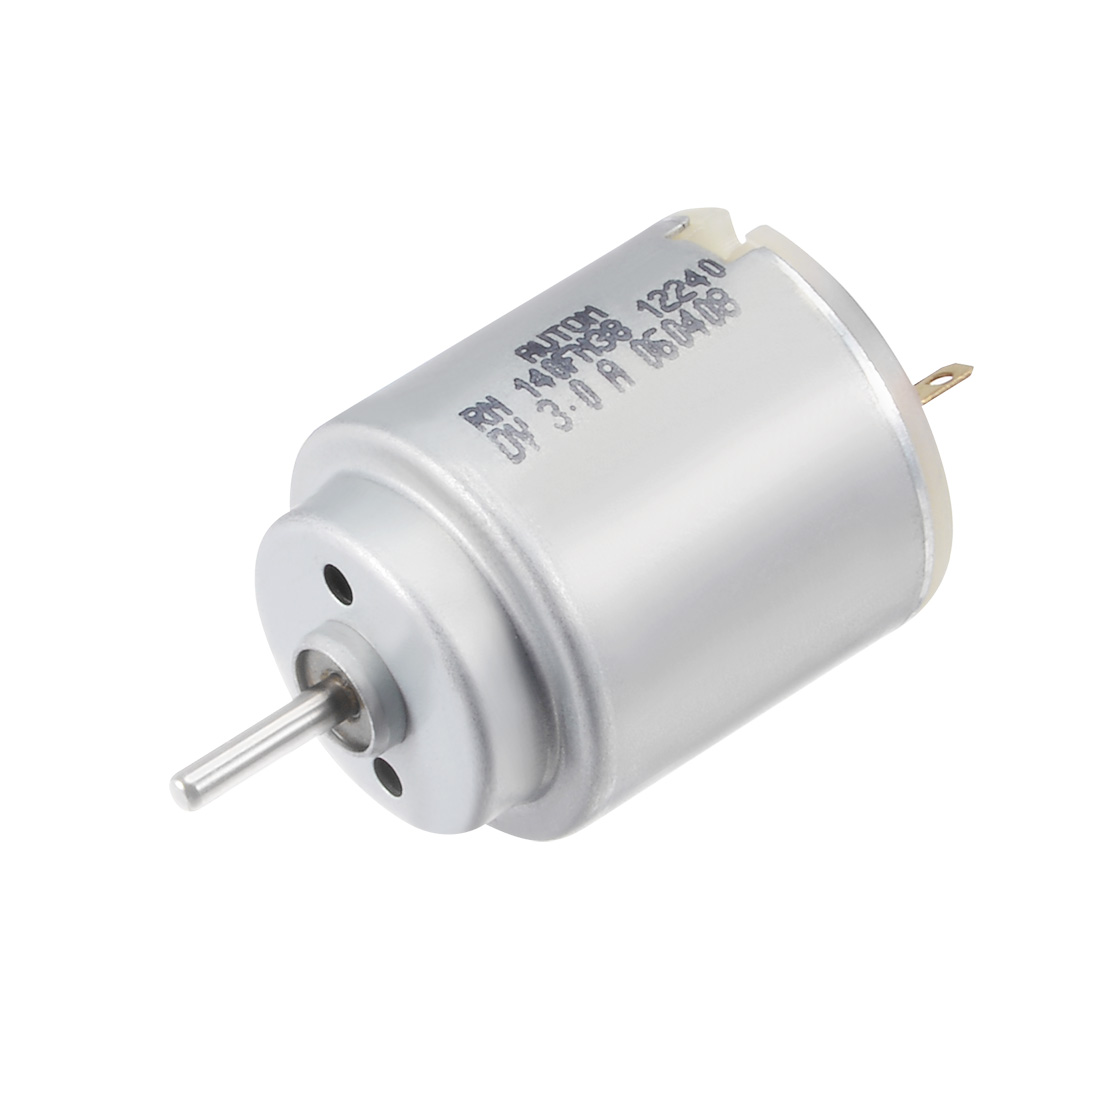 Small Motor DC 6V 9300RPM High Speed Motor for DIY Hobby Toy Cars Remote Control